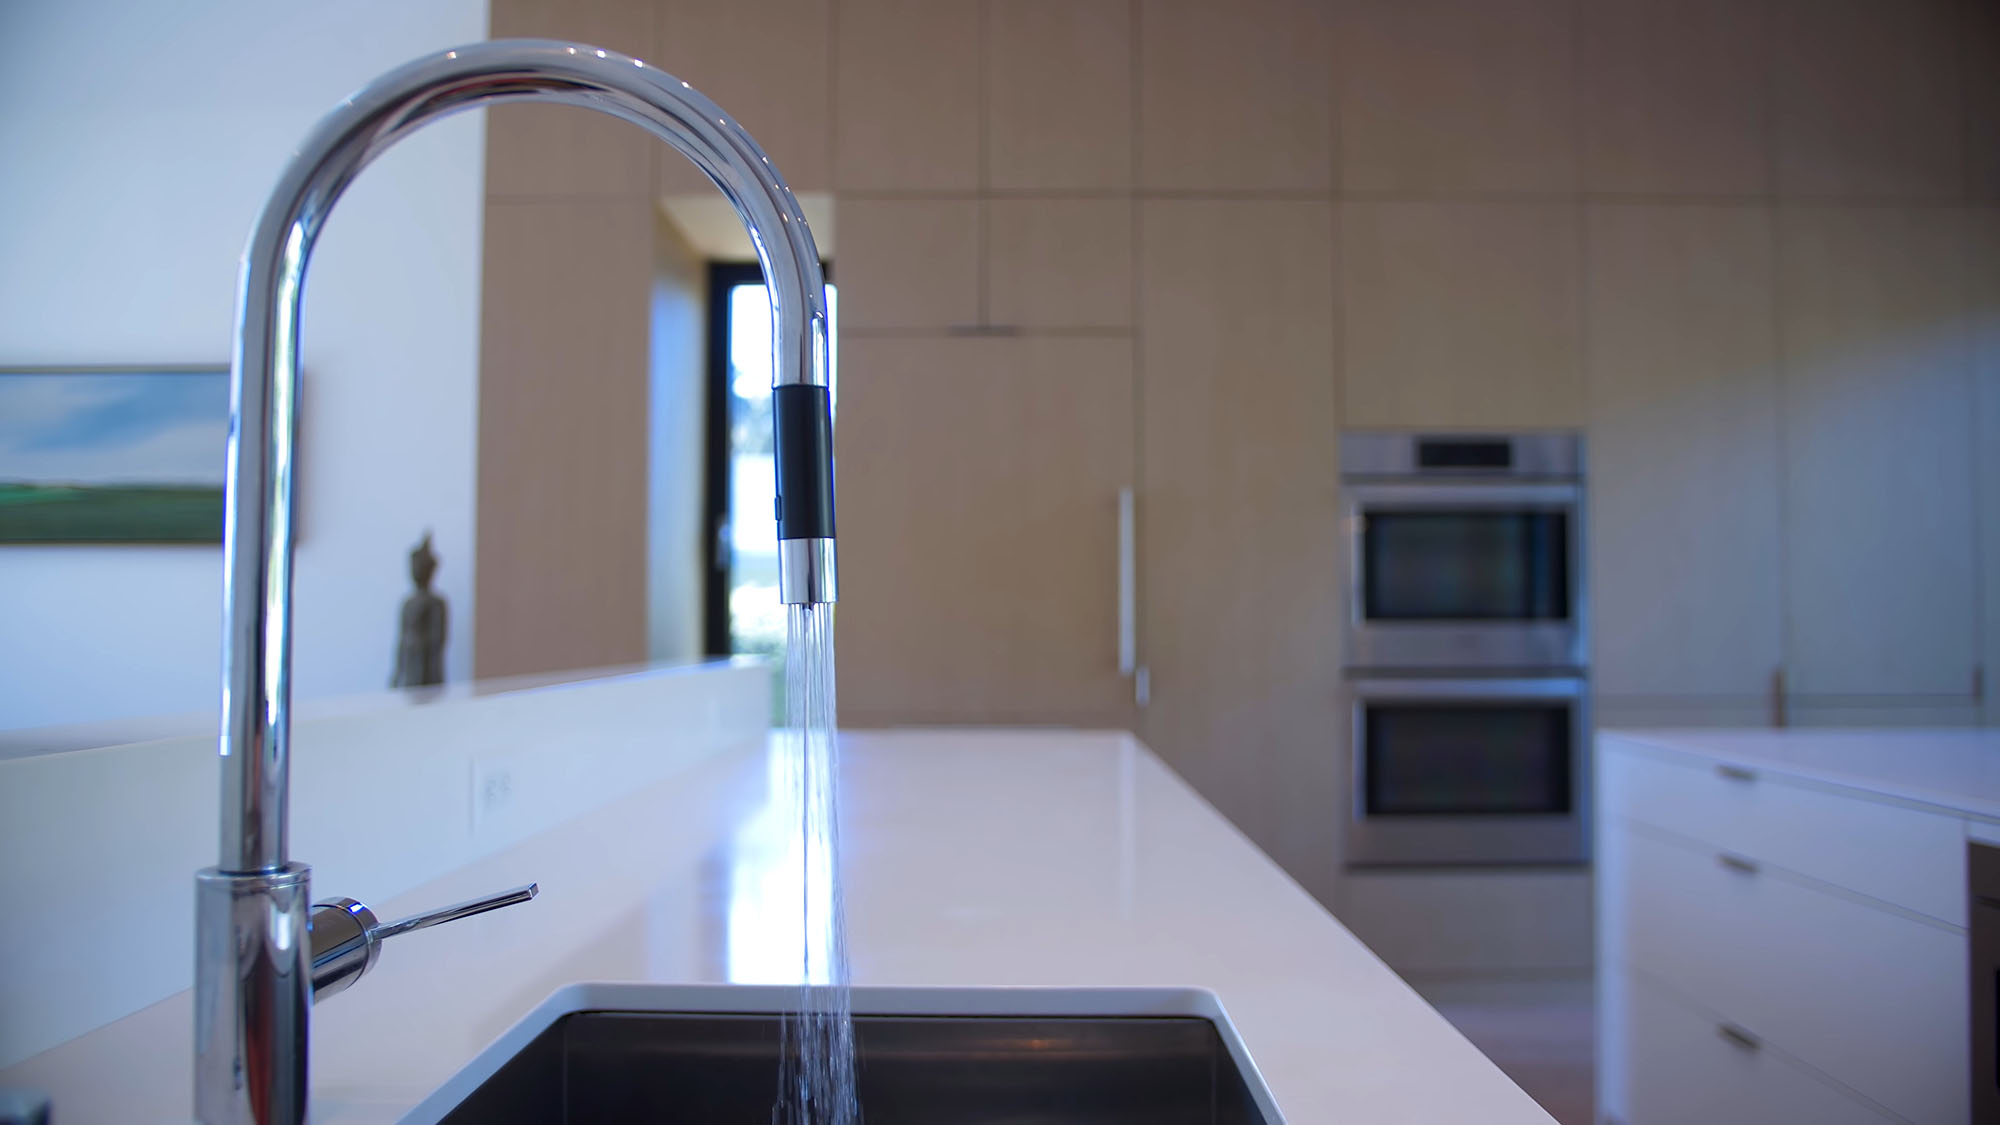 Closeup view of a modern chrome faucet with touch controls. modern home design details.